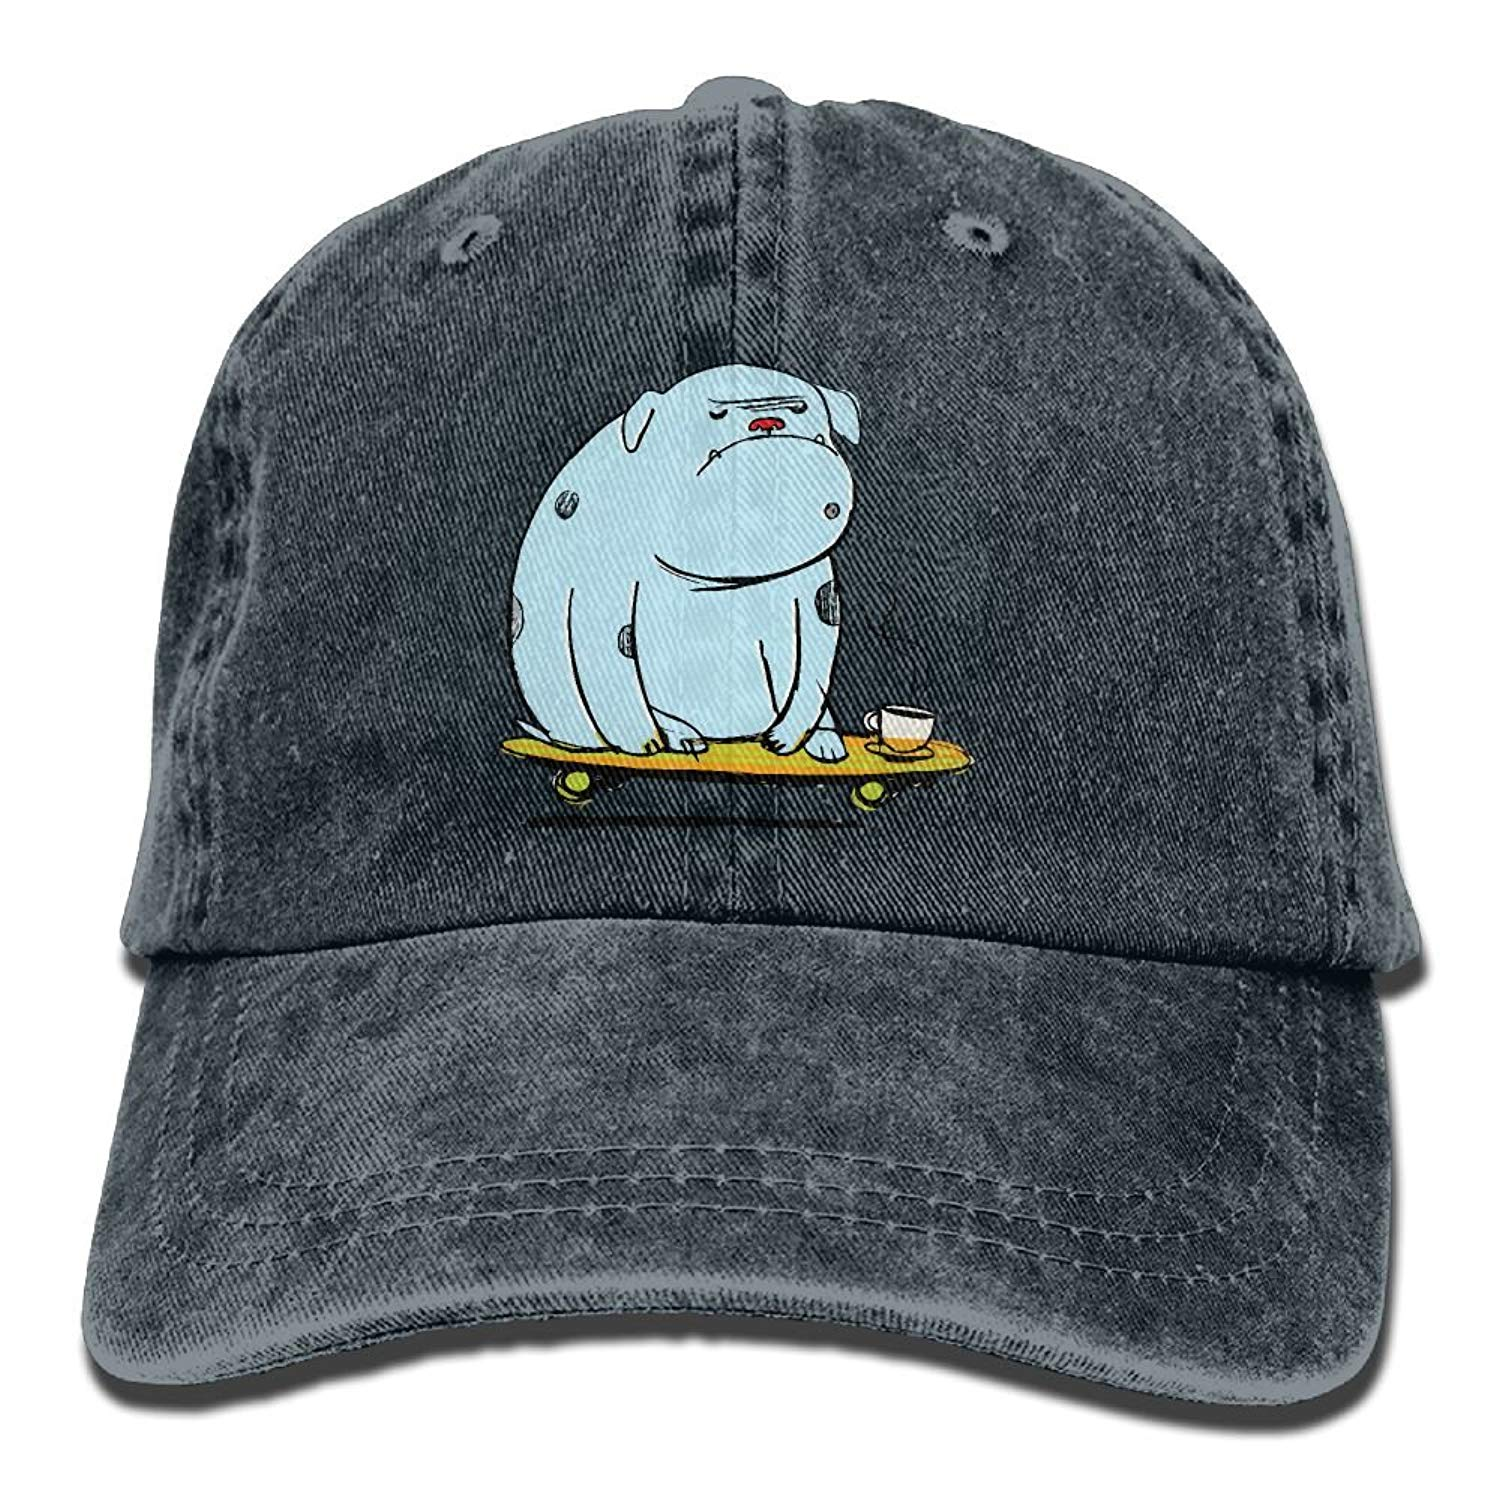 Get Quotations · Hhil Swater Unisex Abstract Hippo Skate Coffee Adjustable  Denim Baseball Caps Cowboy Peaked Hats aa1d673664f